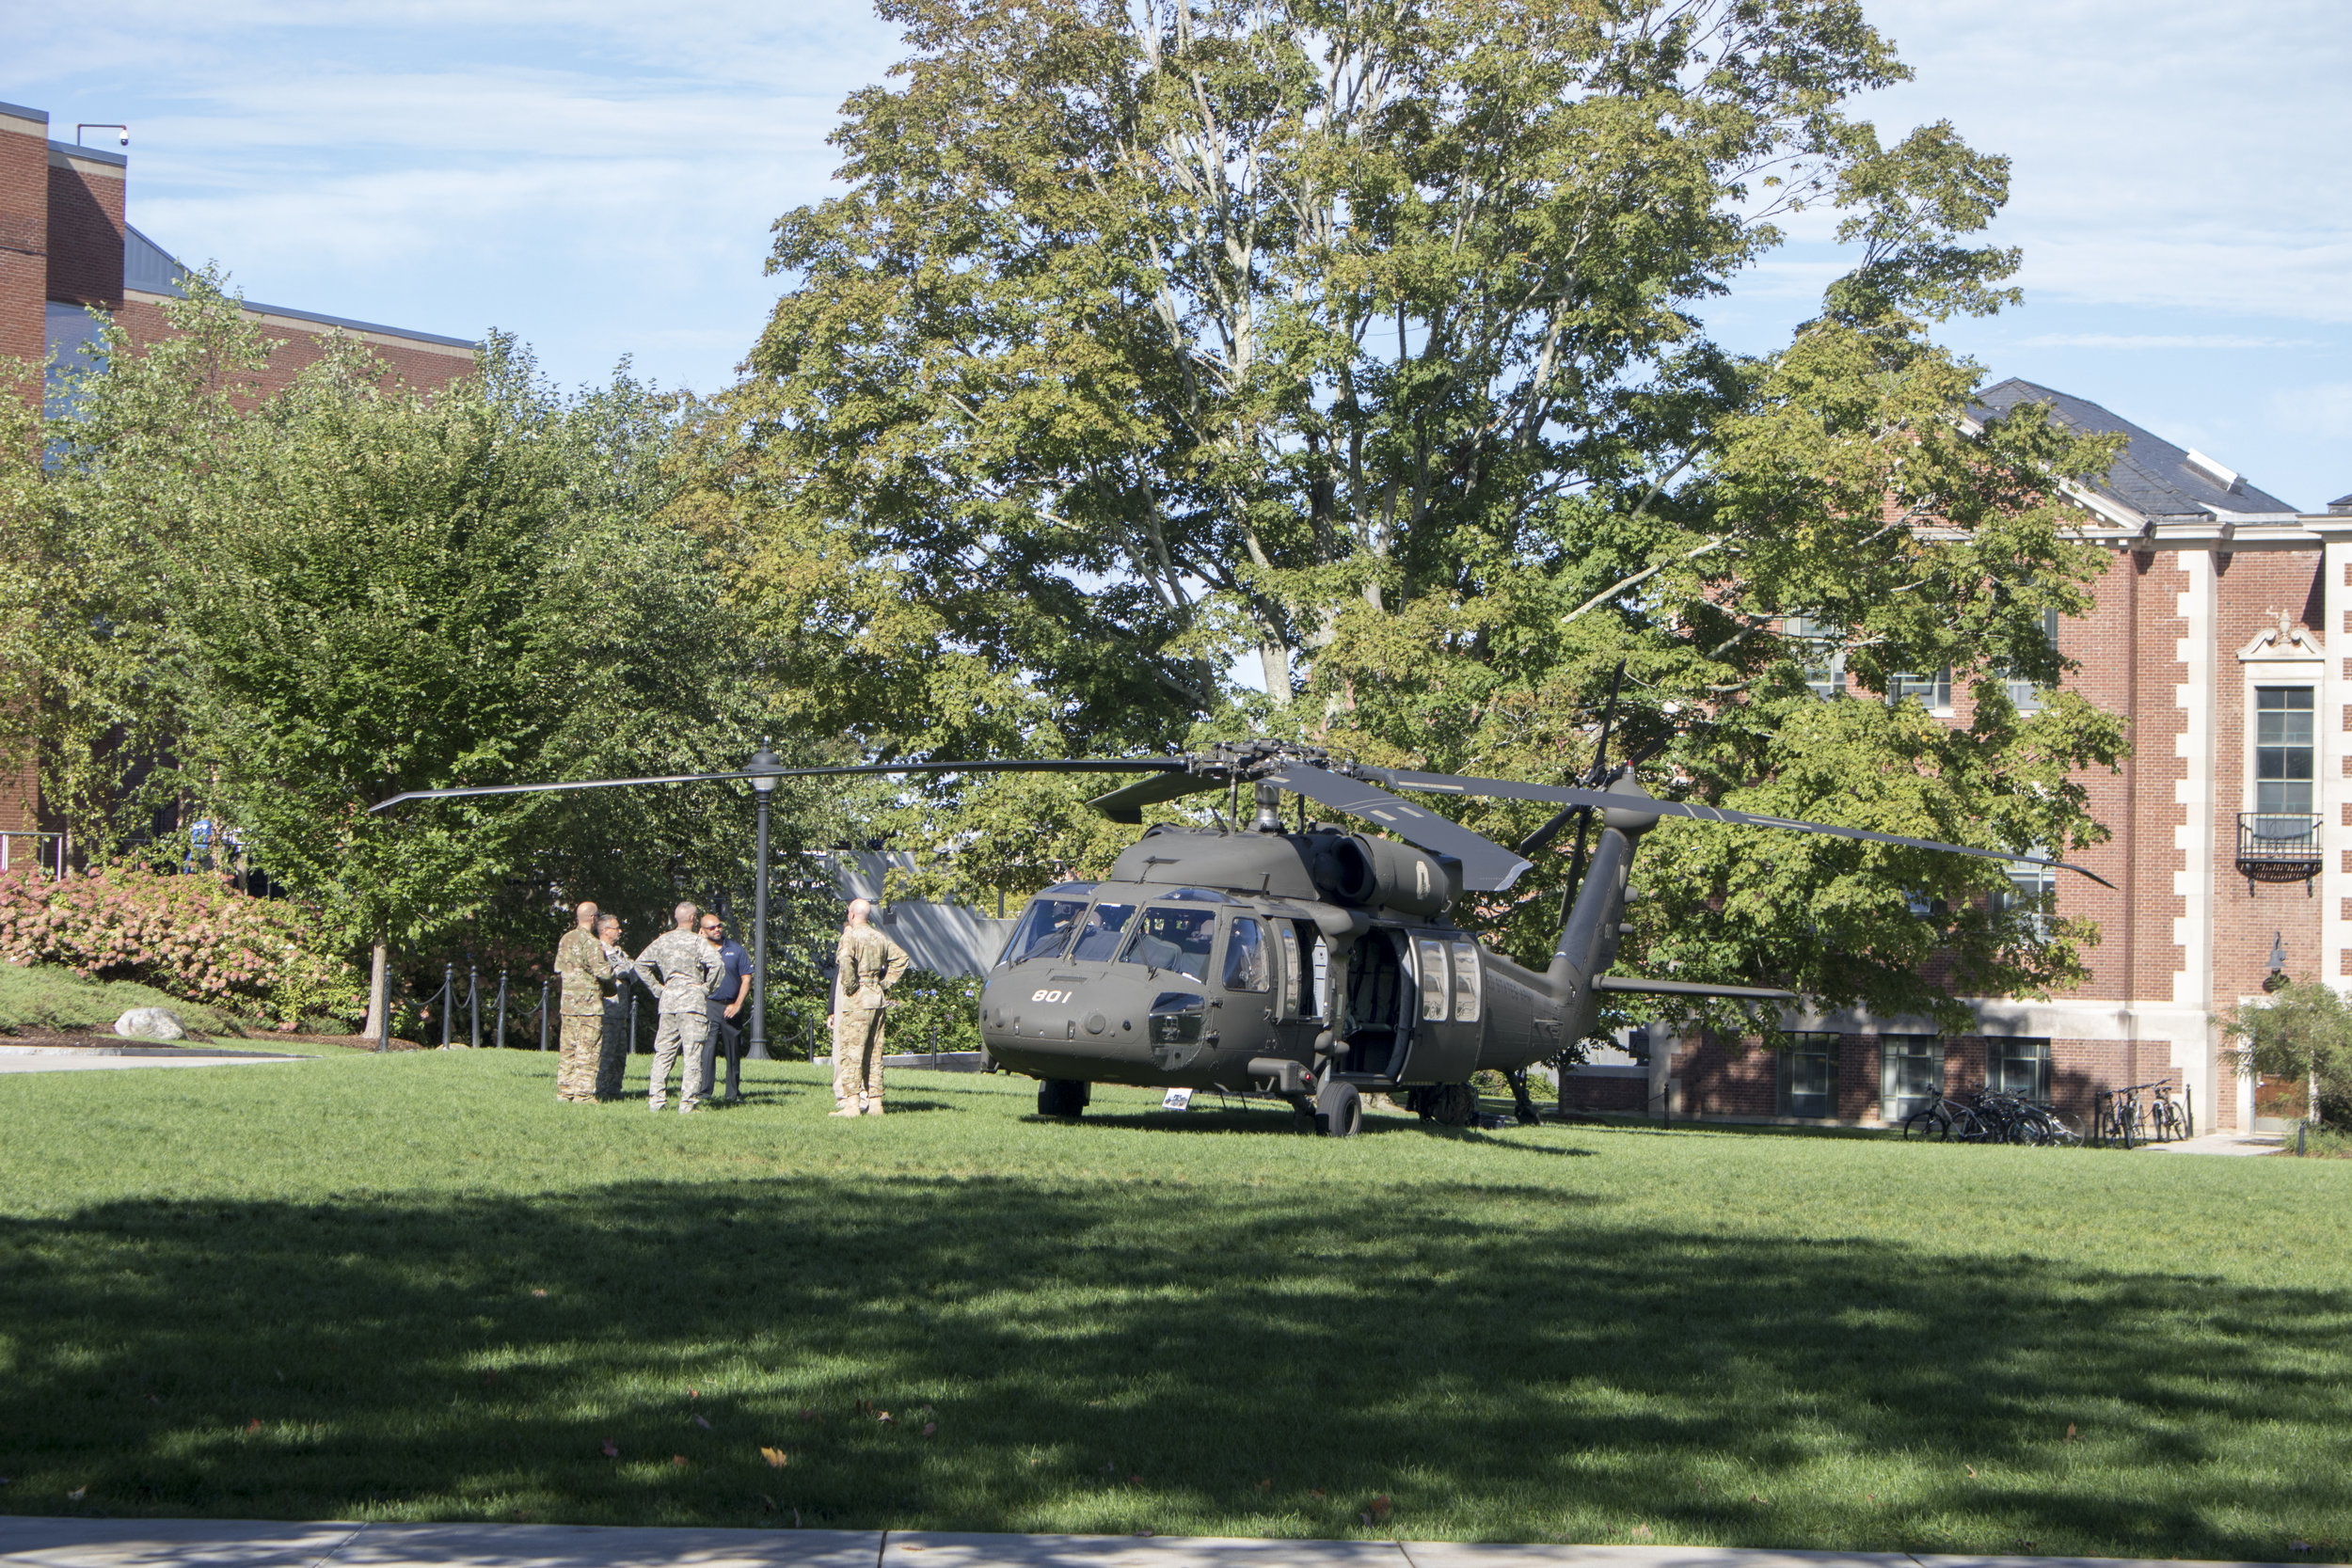 The University of Connecticut will be collaborating with local aerospace companies like Pratt & Whitney and UTC Aerospace Systems. (File photo/The Daily Campus)